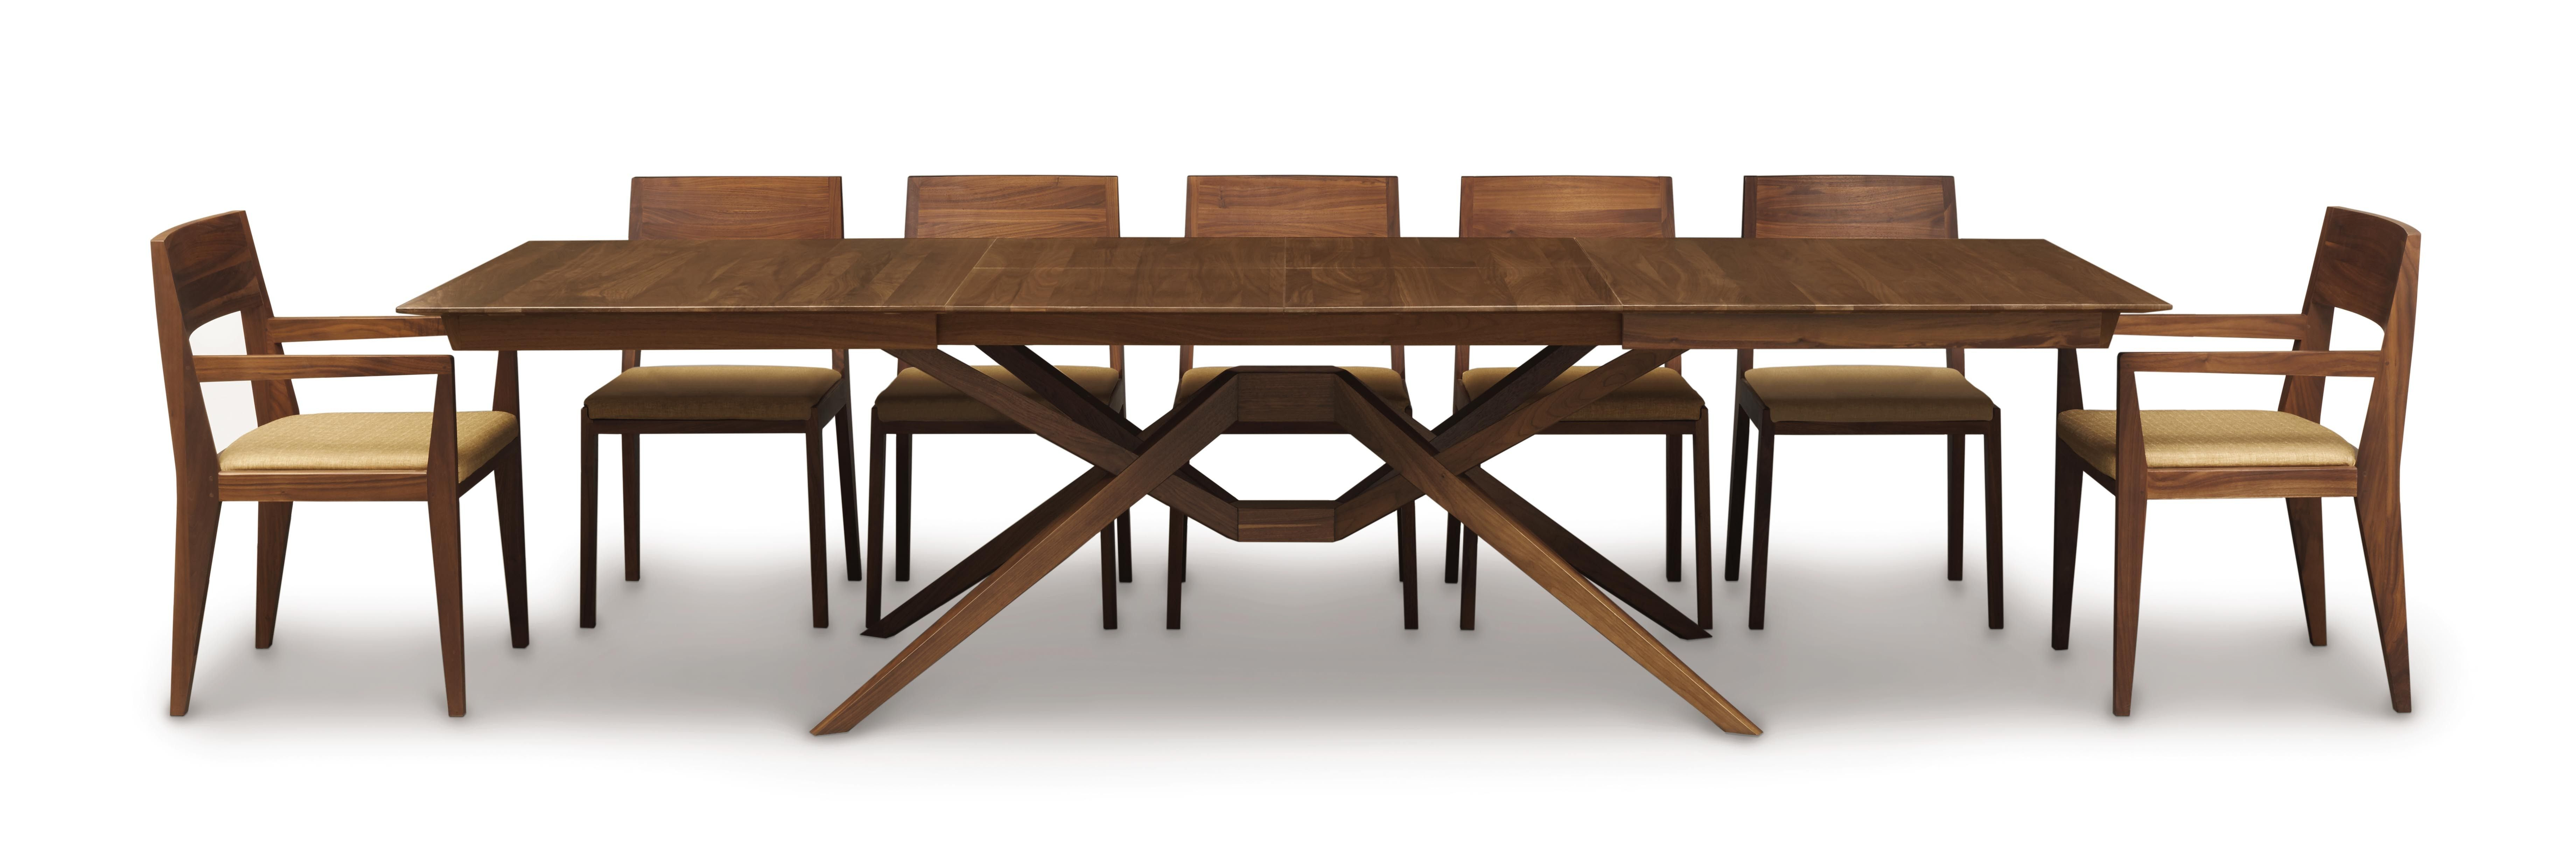 The Exeter Dining Room Is Crafted In Solid American Black Walnut Hardwood With